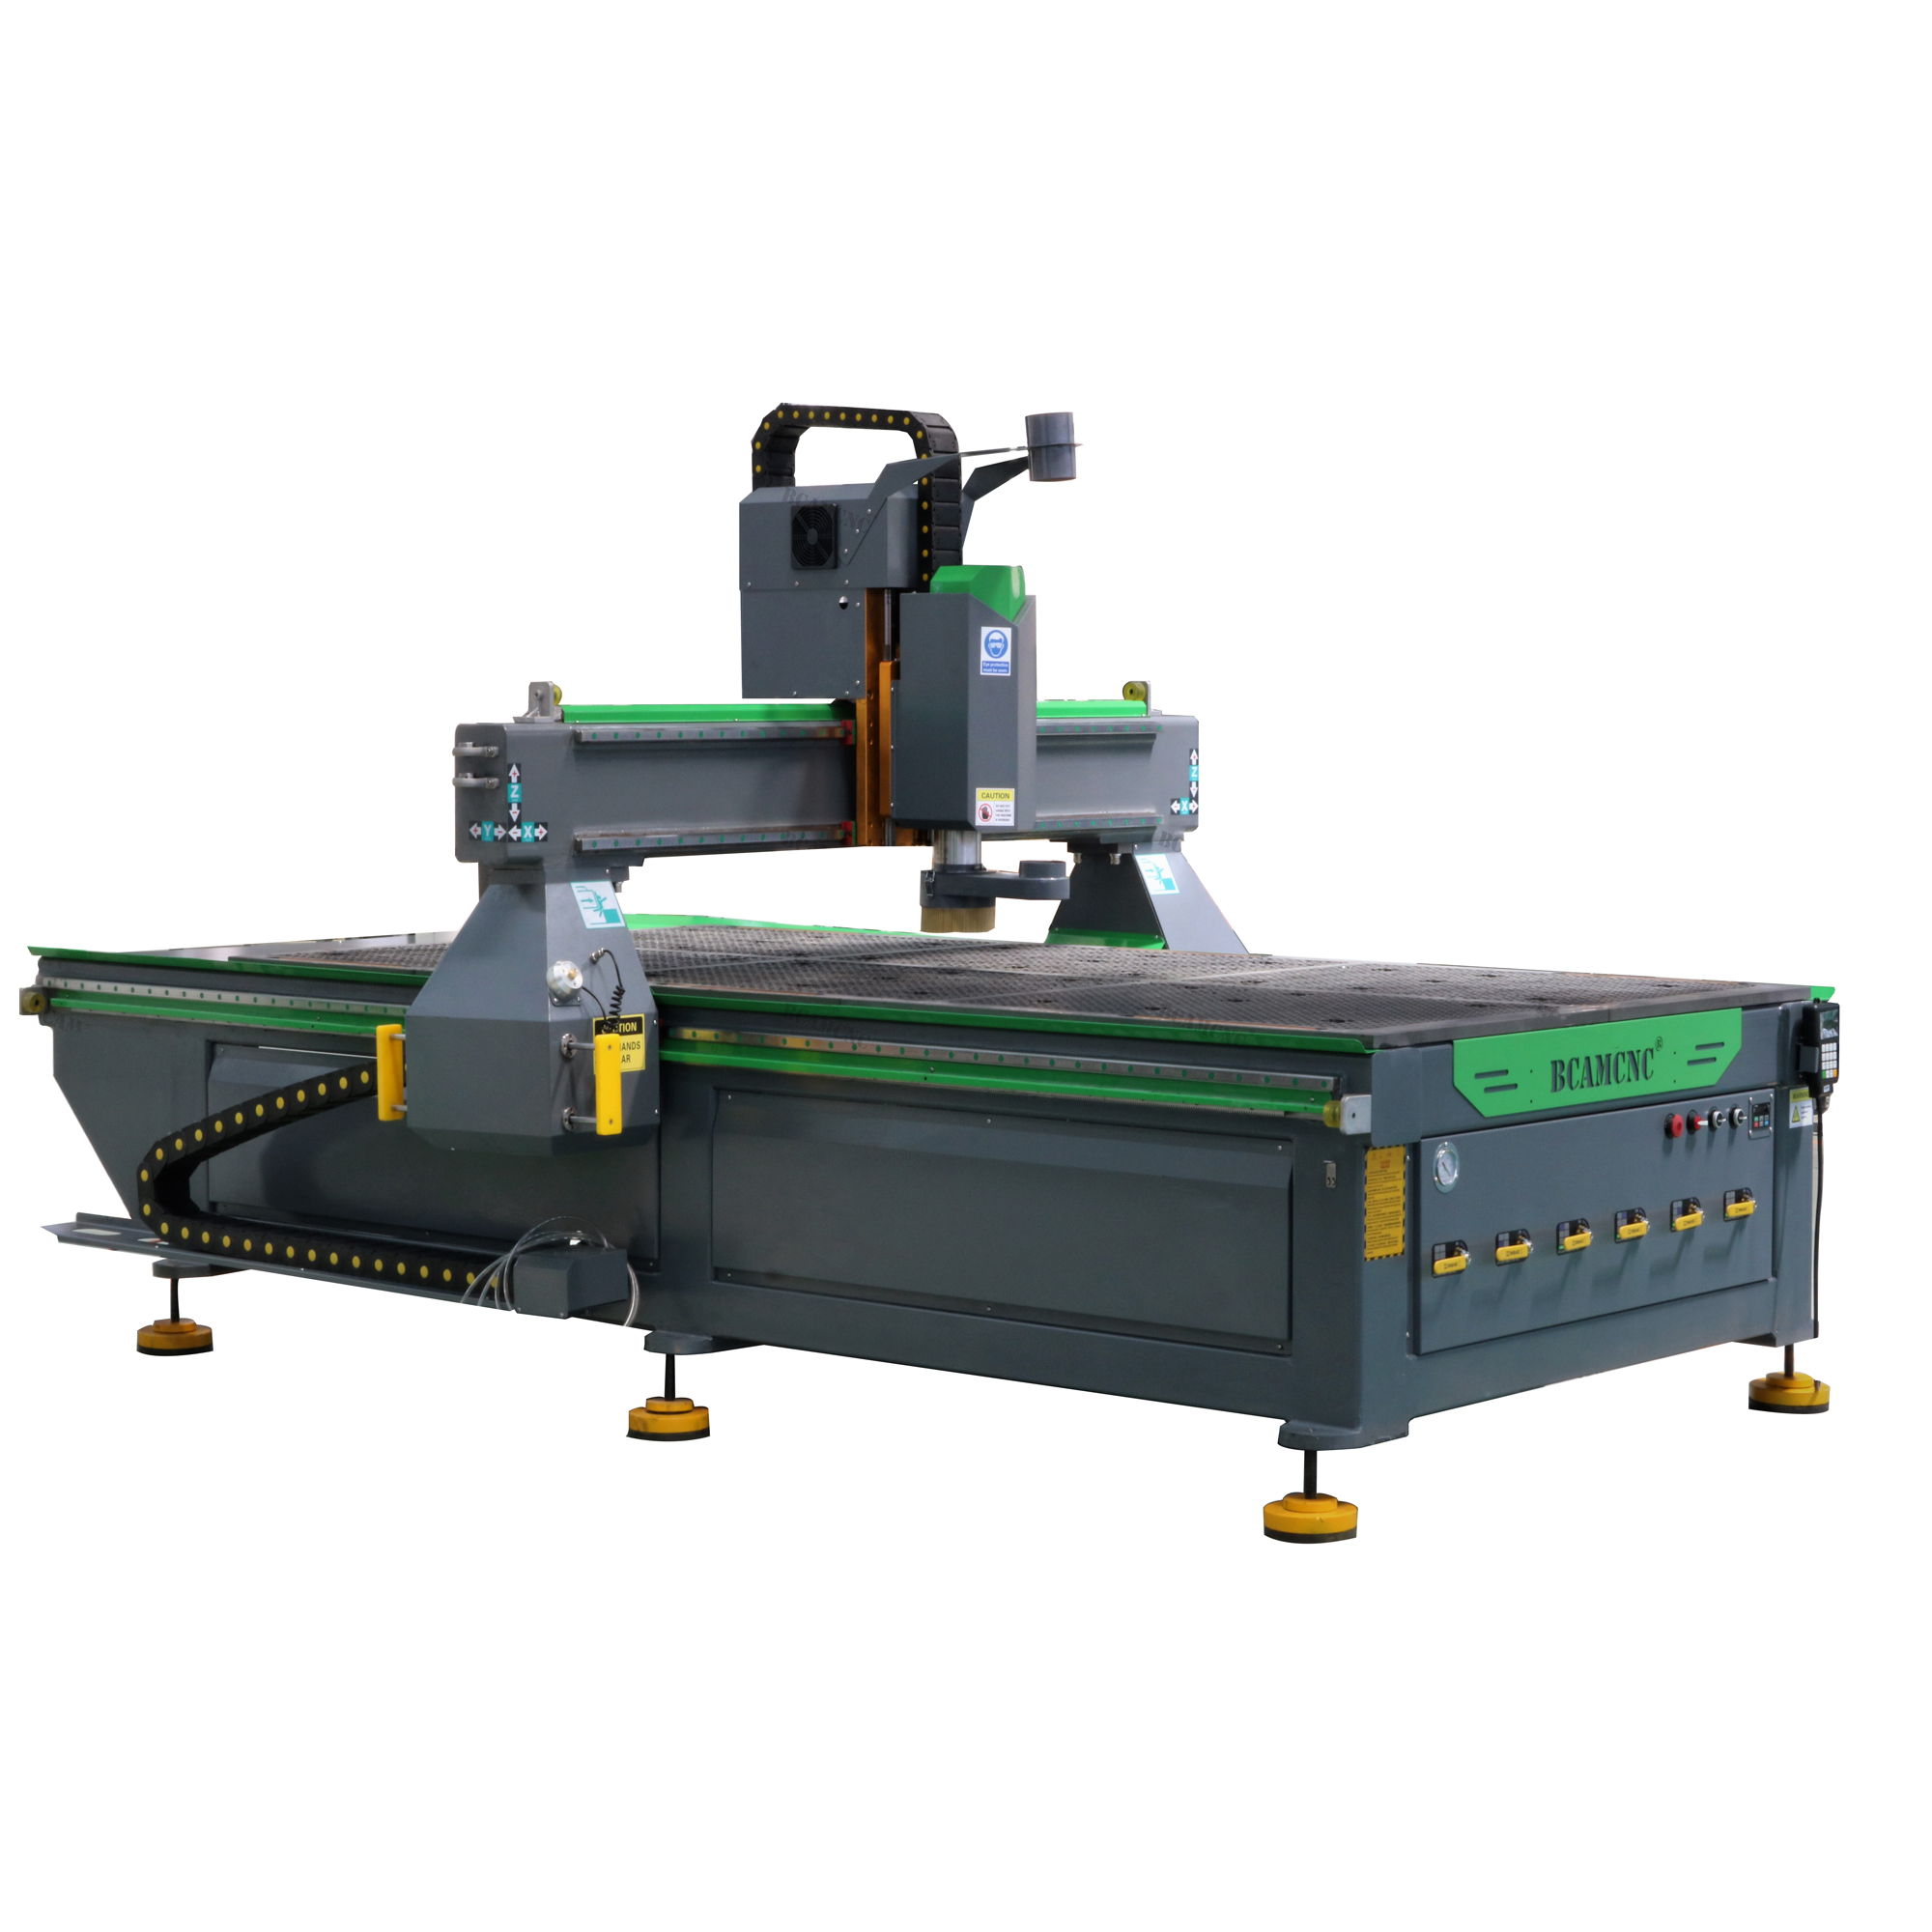 Bcamcnc Cnc Router Cabinets Machine for Furniture - Dragon Machinery-1 20